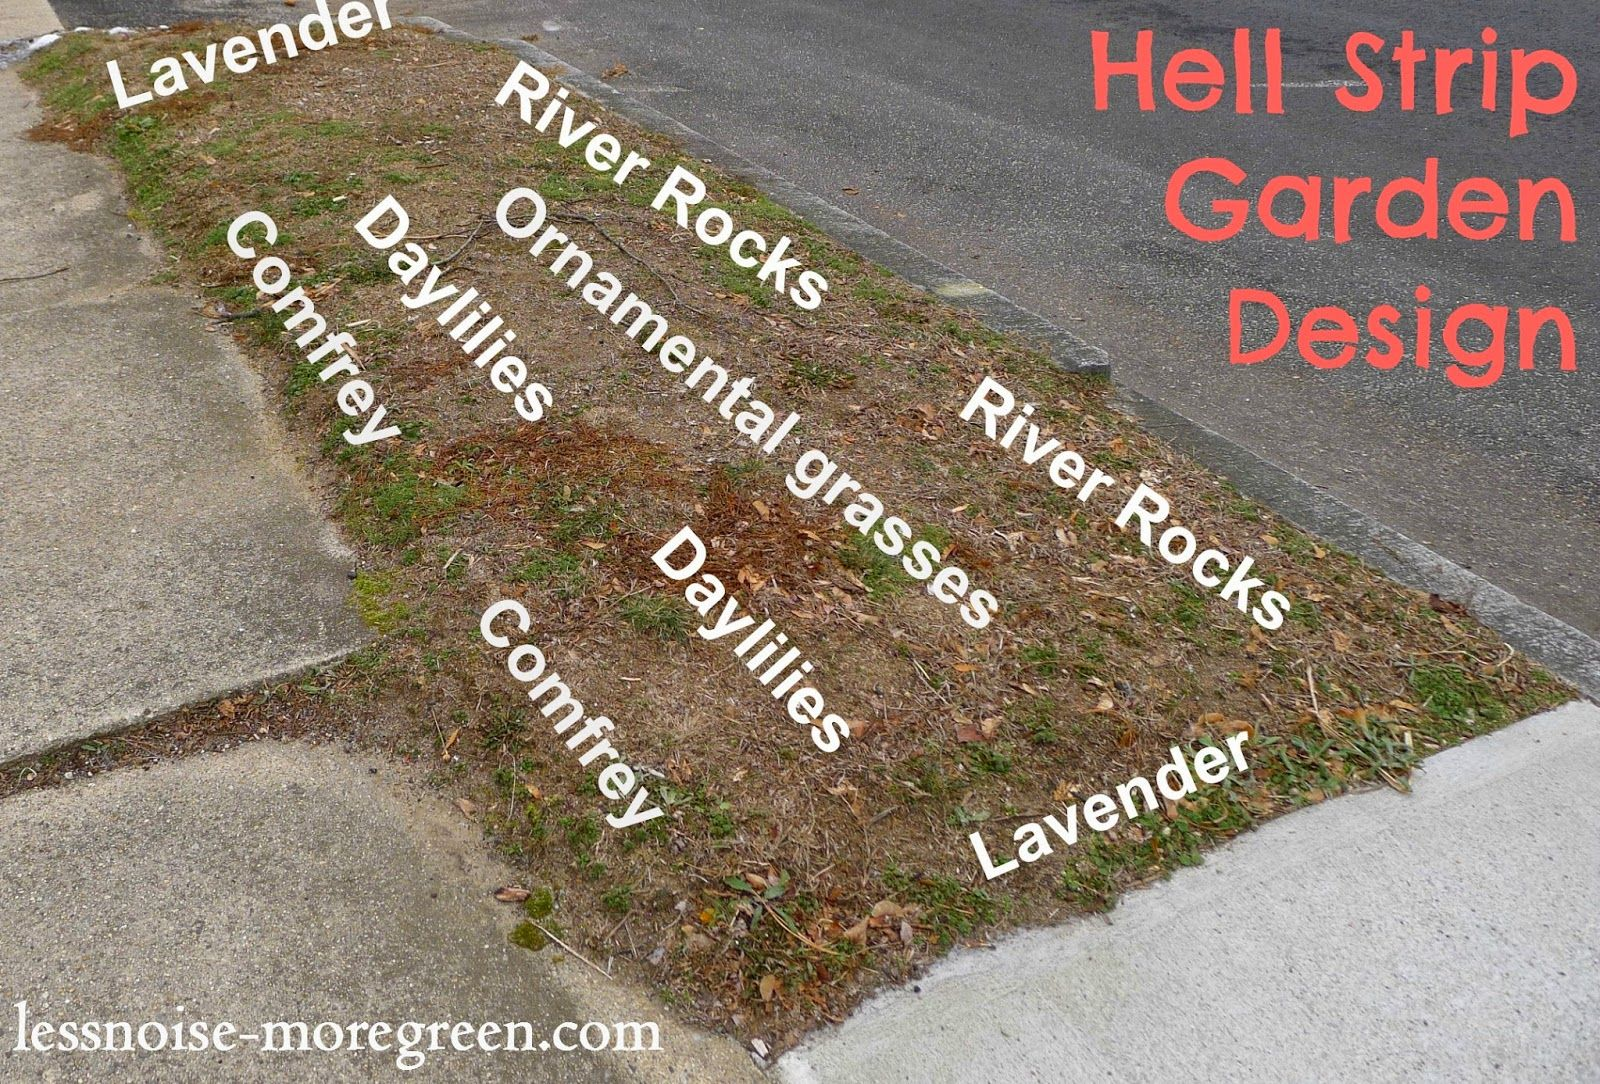 hell strip garden design for rhode island usa lessnoise moregreencom - Garden Design Usa